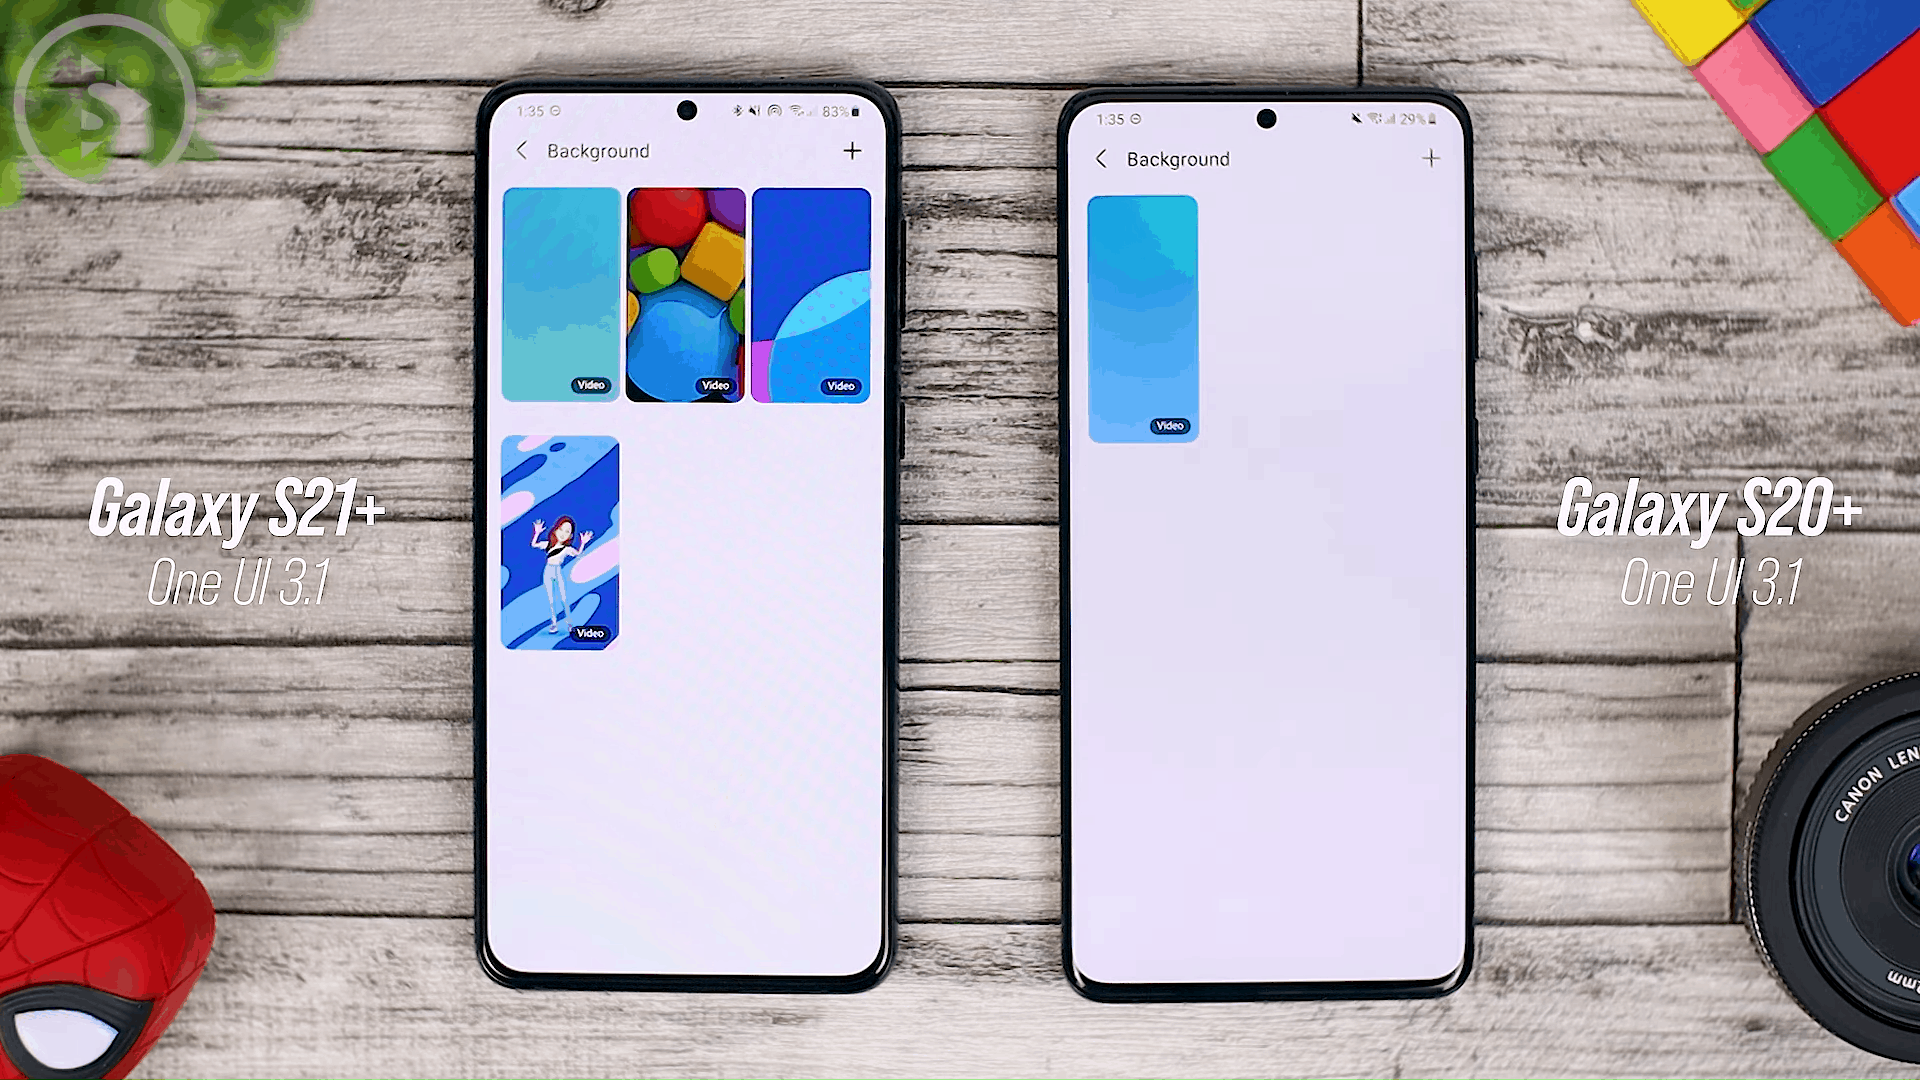 No New Call Background - One UI 3.1 Features on Samsung S20, S20+, S20 Ultra